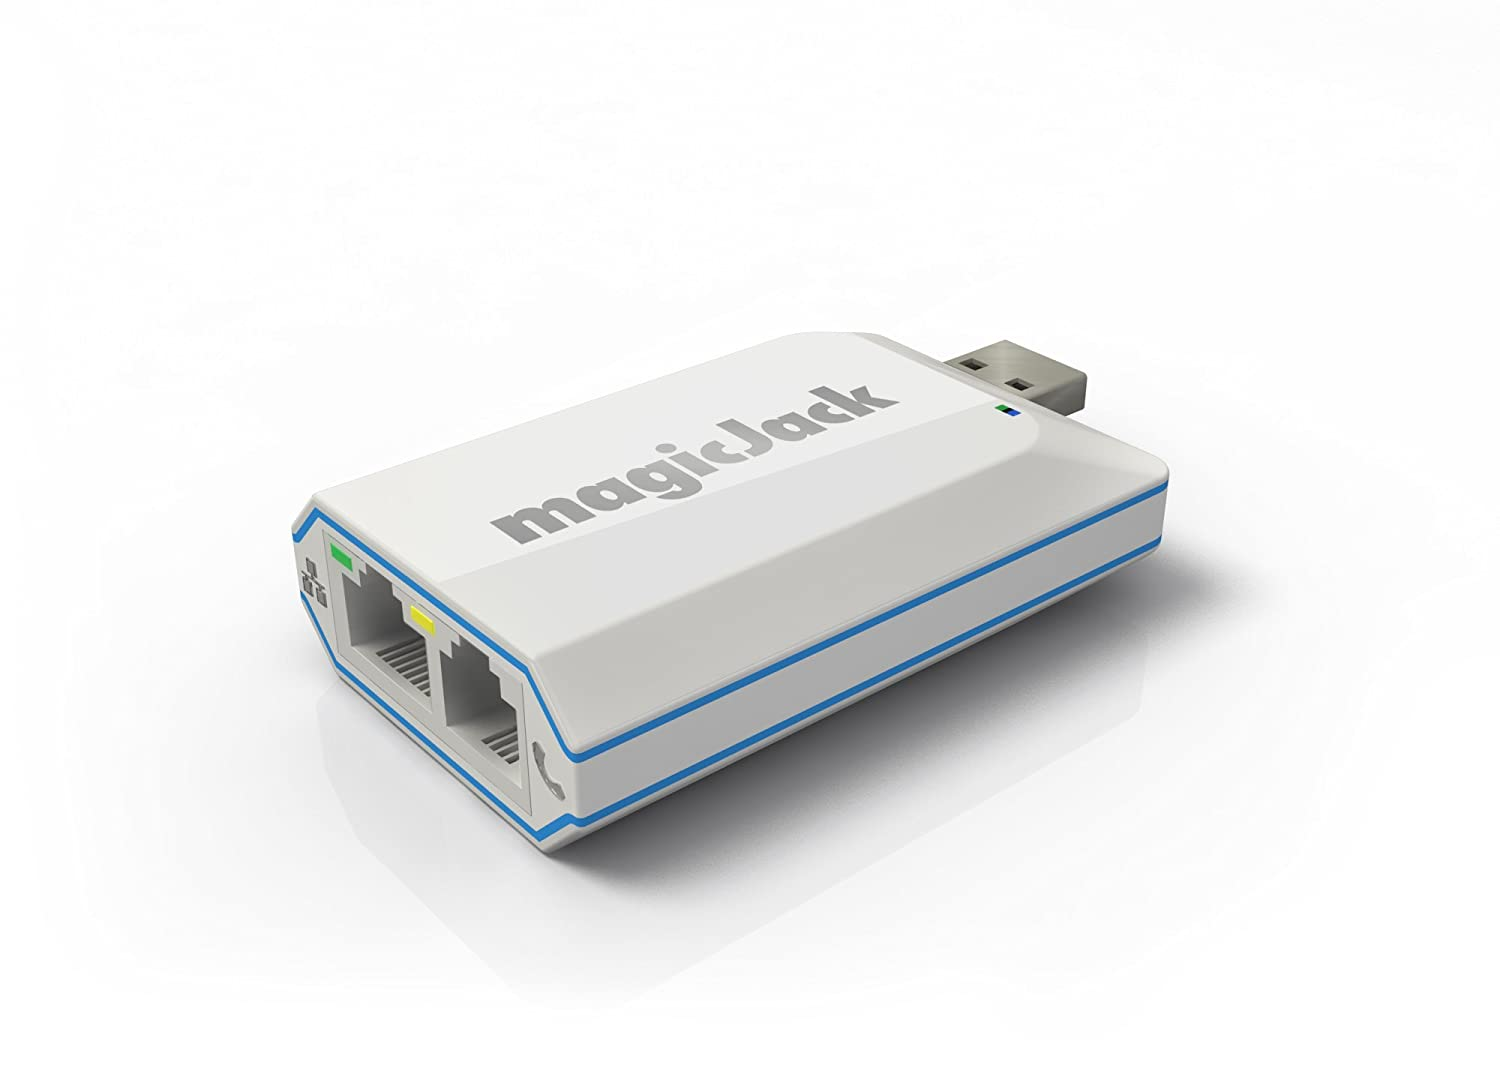 Magicjack Go And Express For Sale In Trinidad Cstt Magic Jack Internet Phone No Monthly Bills Because Is Using Voip Or The Calls There Are Companies Involved You